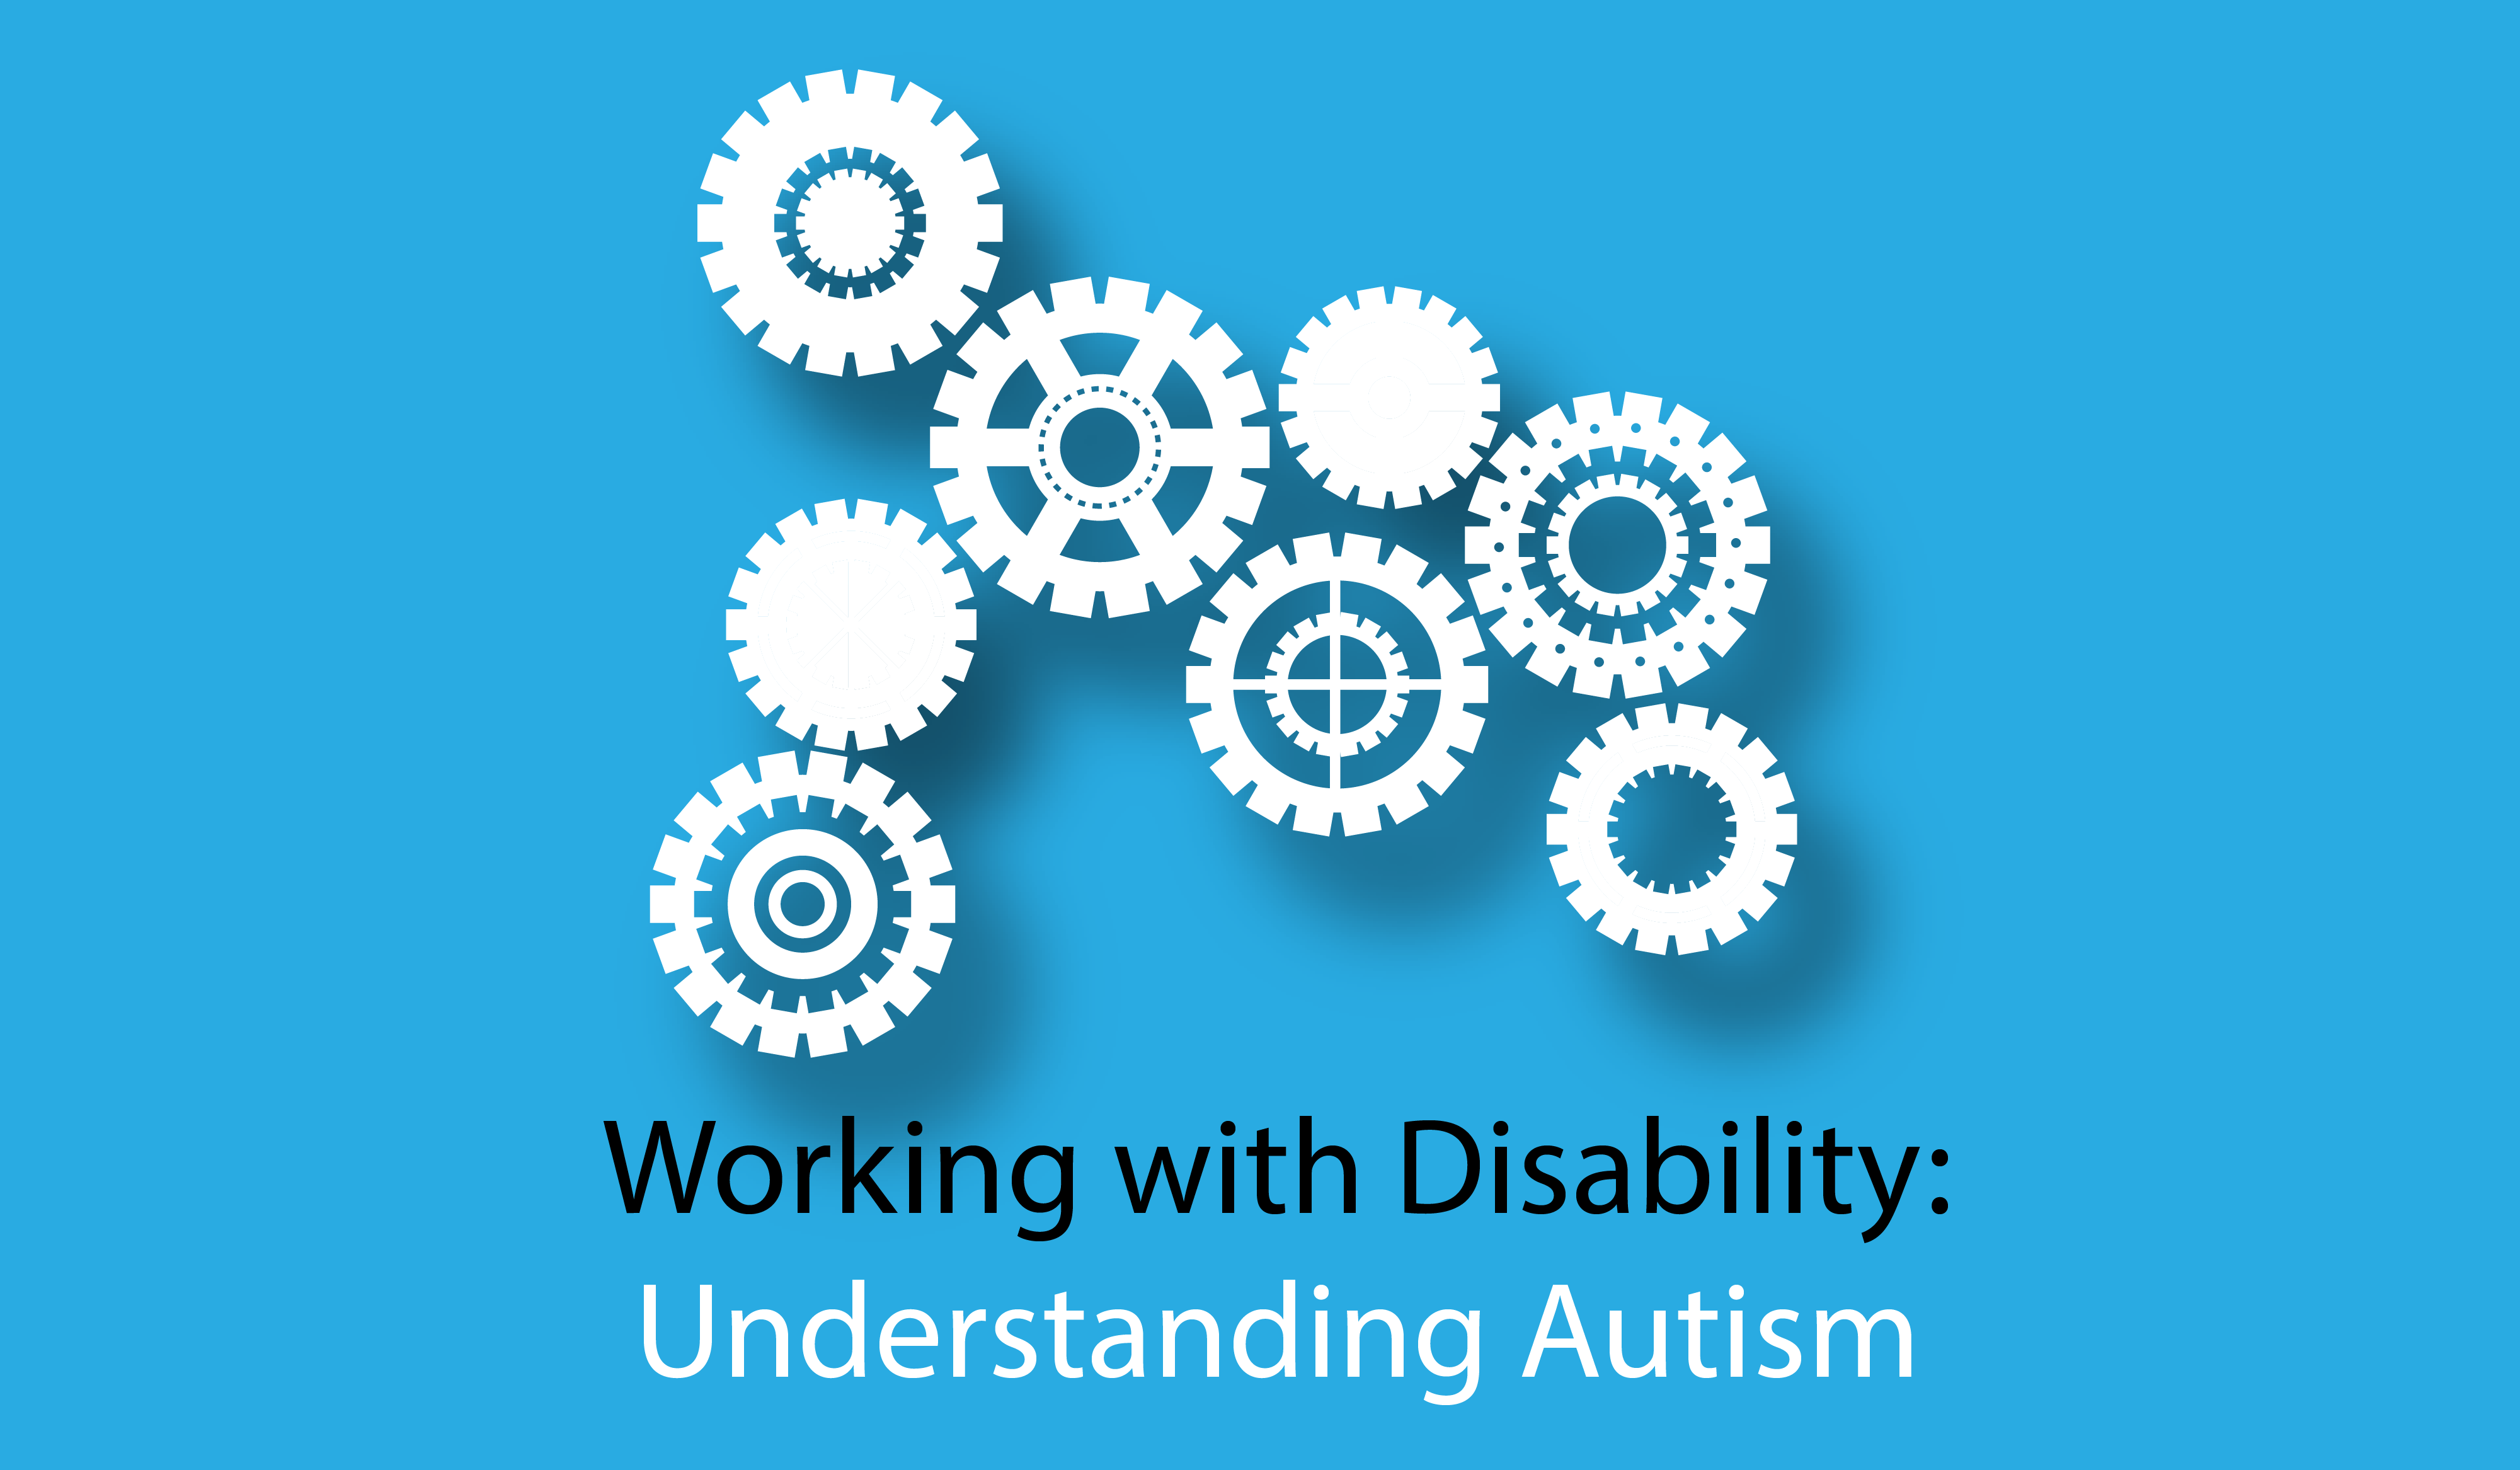 Working with Disability: Understanding Autism